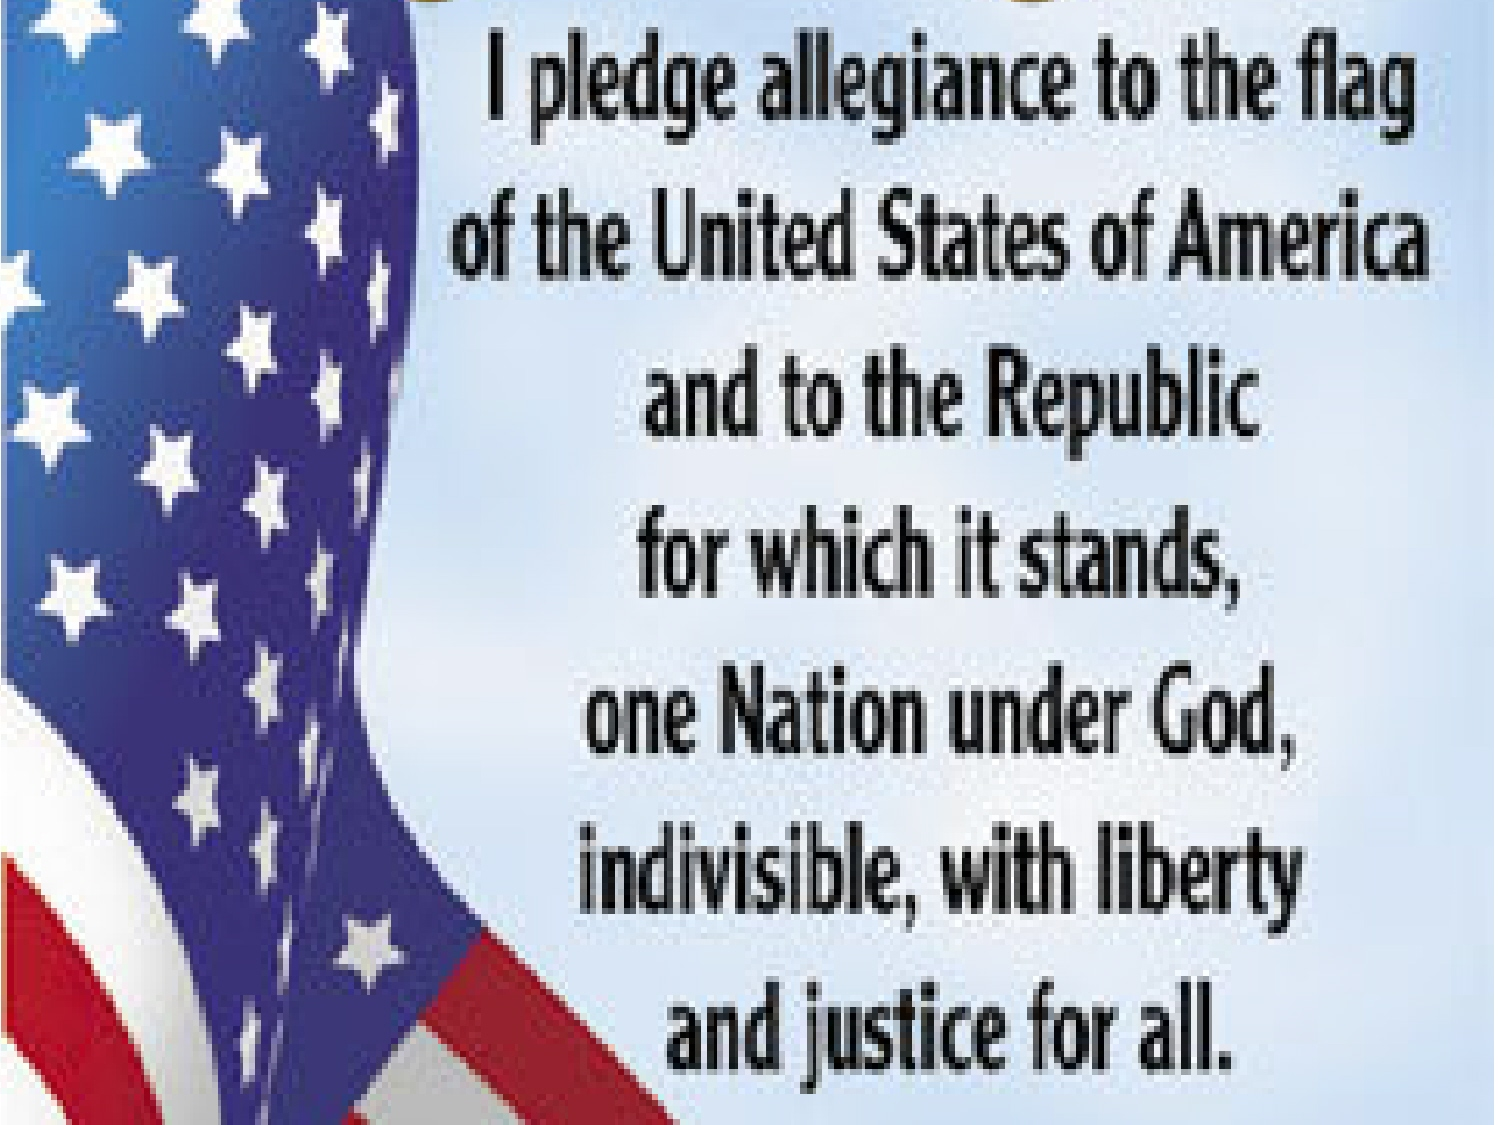 What The Pledge Of Allegiance Means To Me